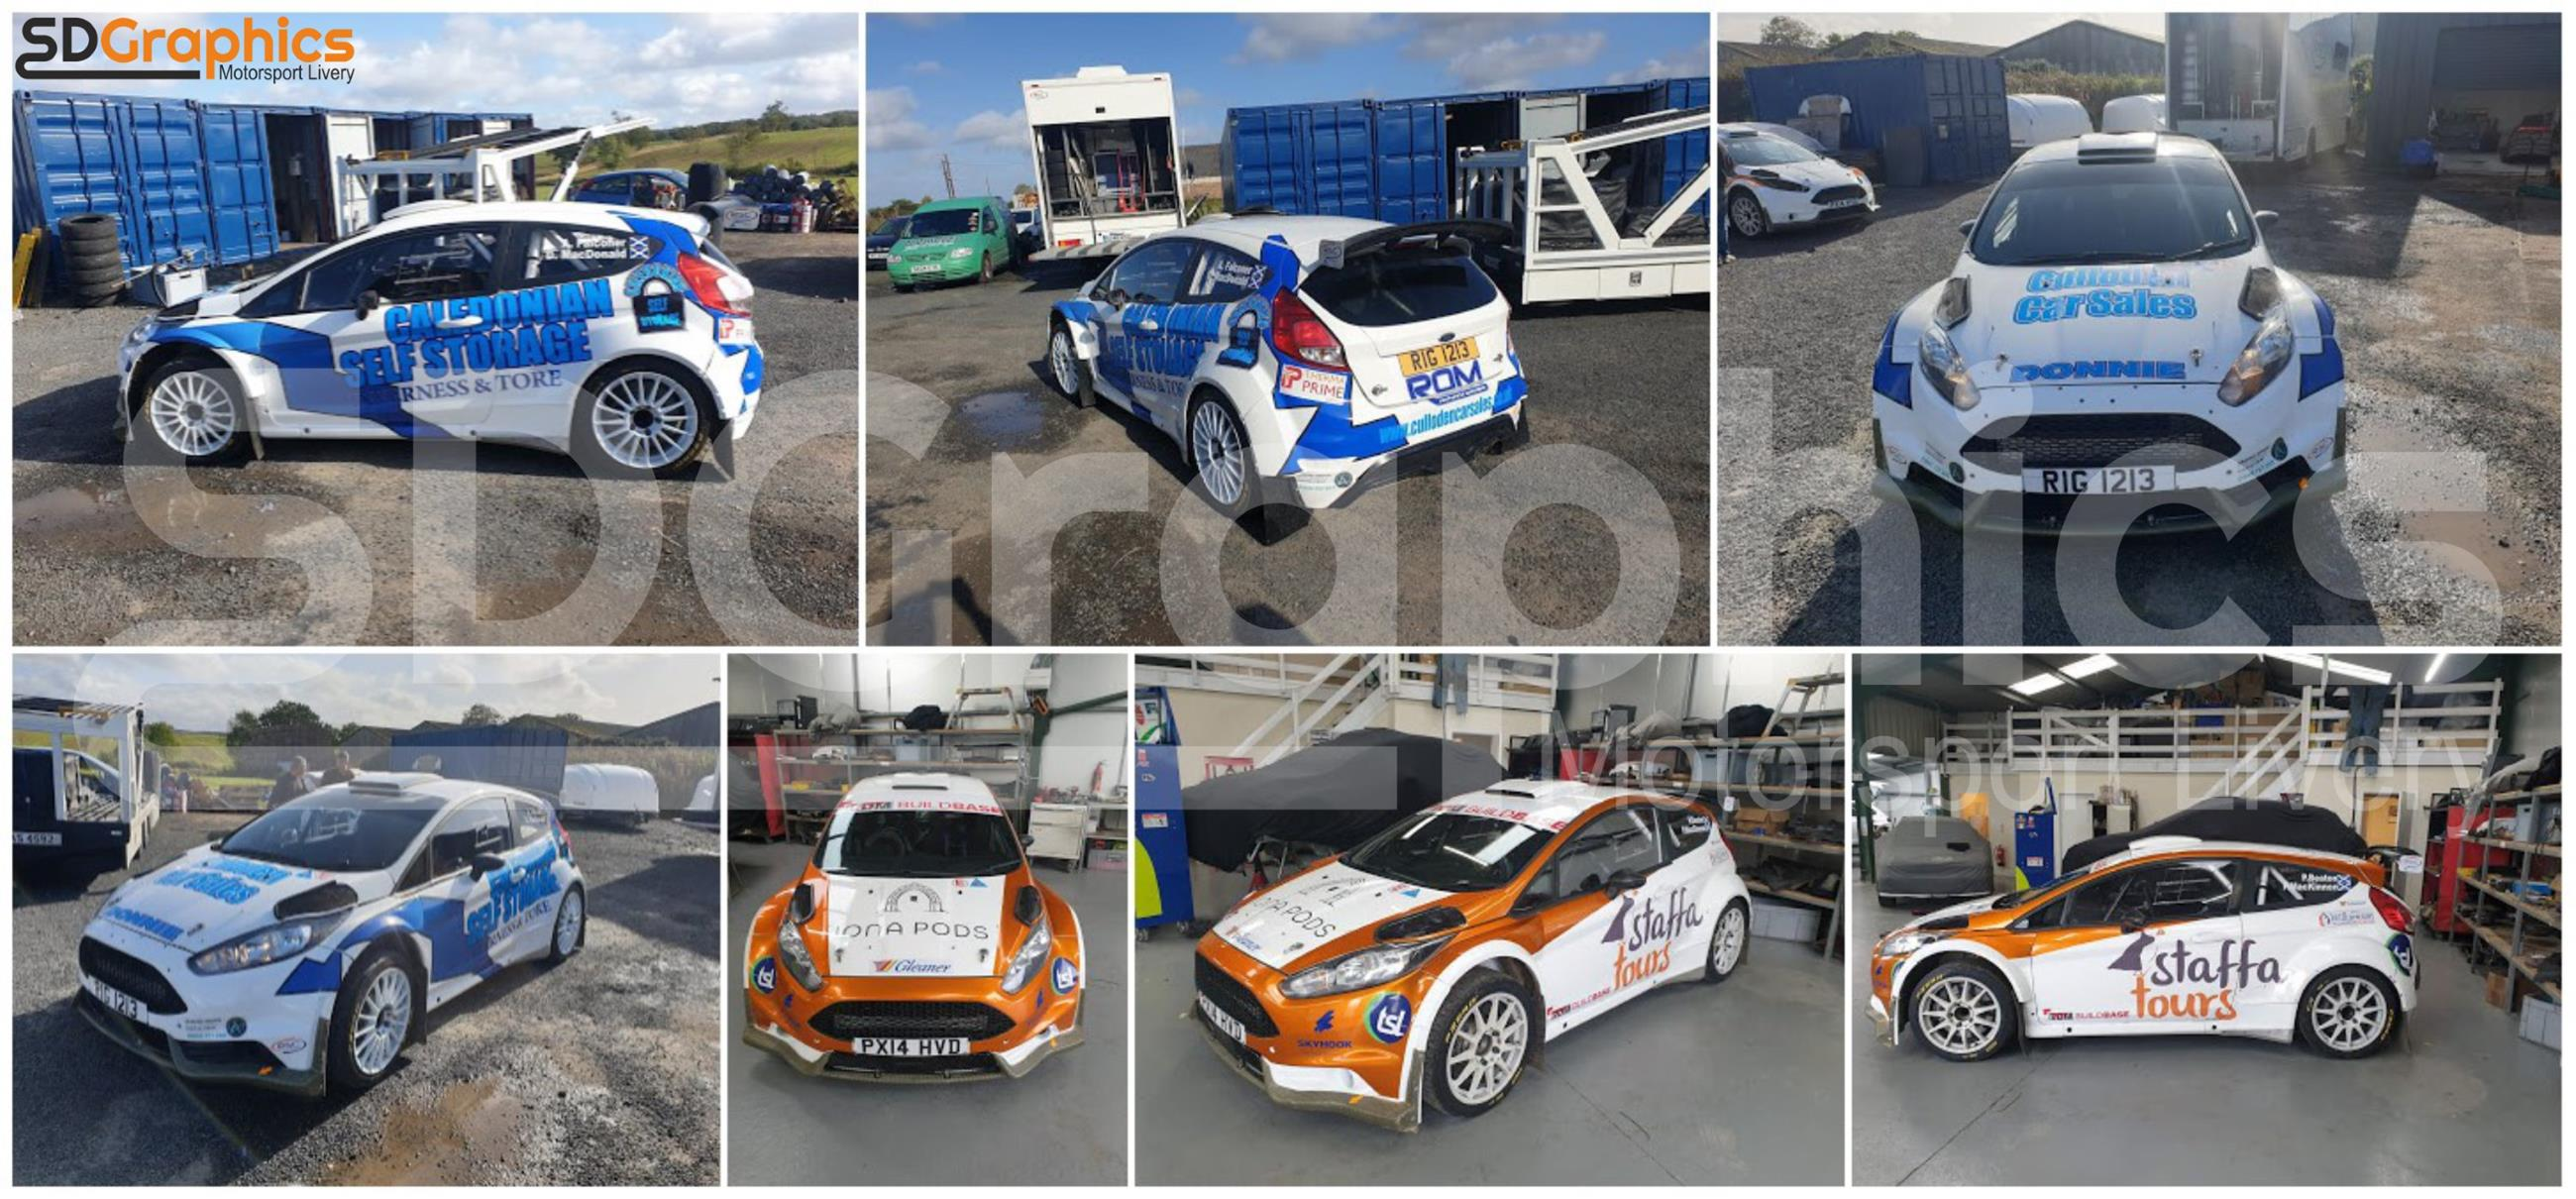 SD Graphics - Car, Vehicle and Motorsport Graphics and Wraps in Scotland